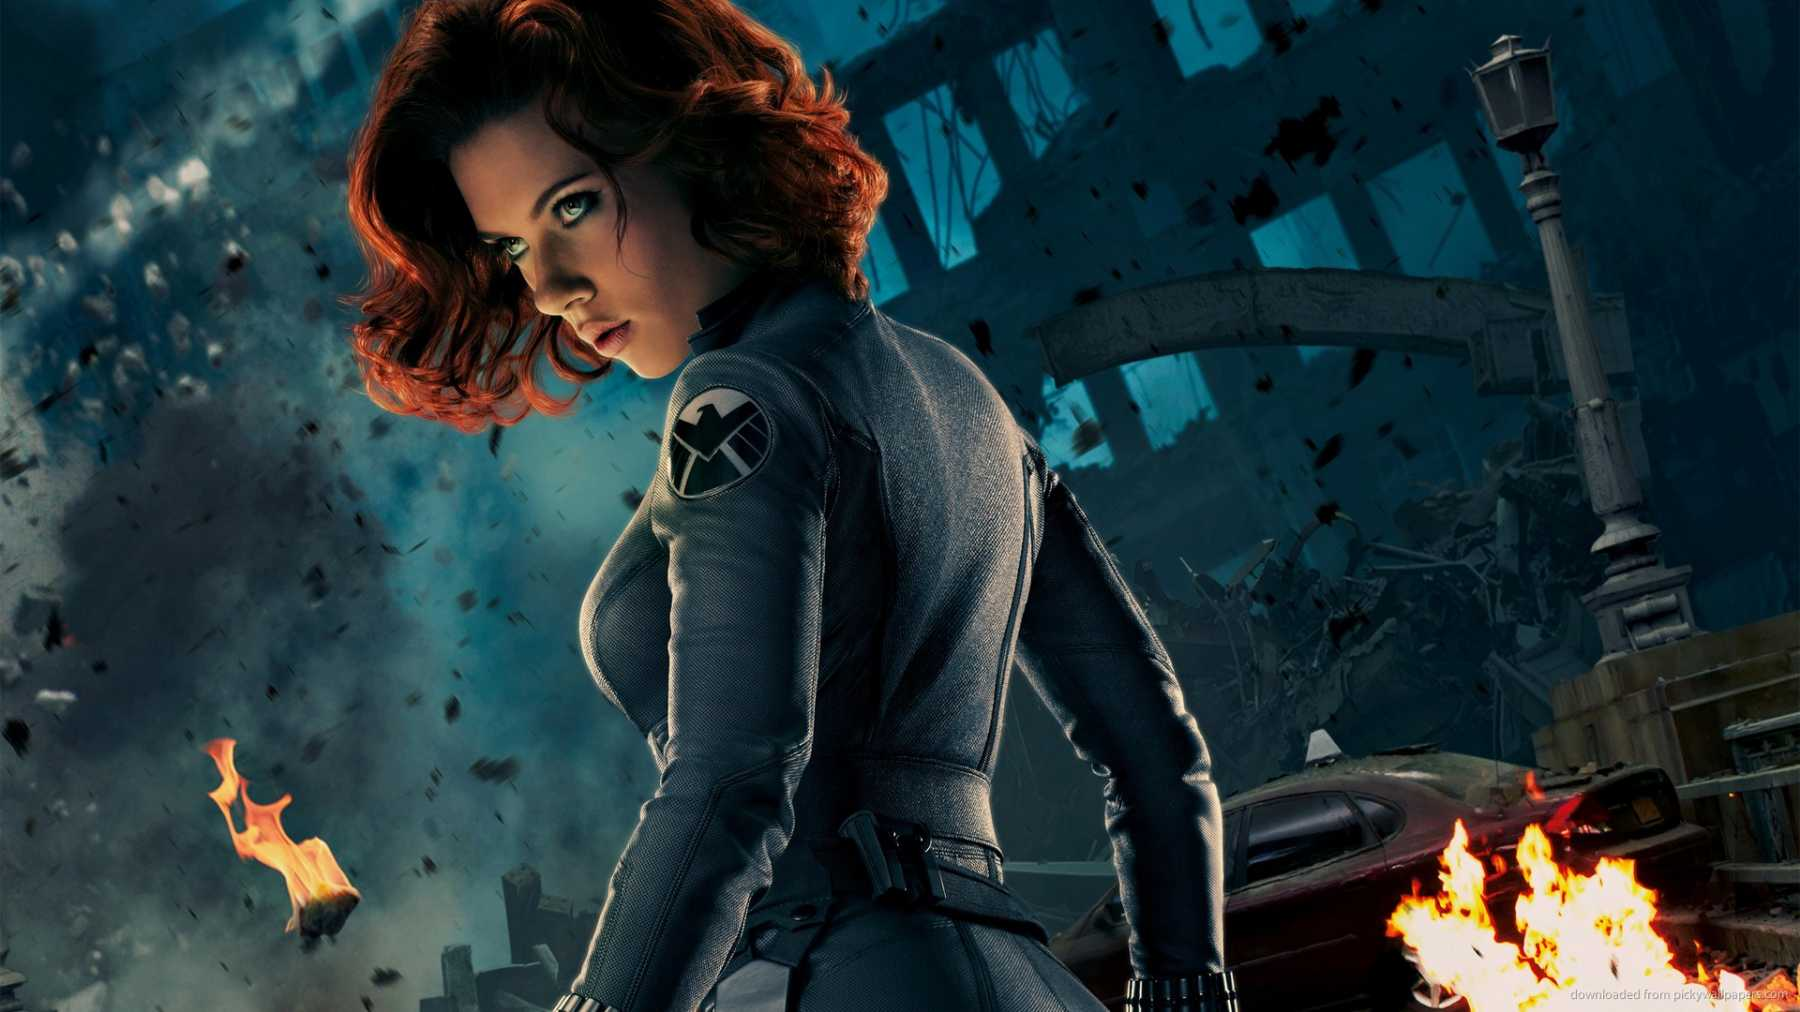 Kevin Feige And MCU: Black Widow Stand-Alone Film Definitely A Possibility | Widow